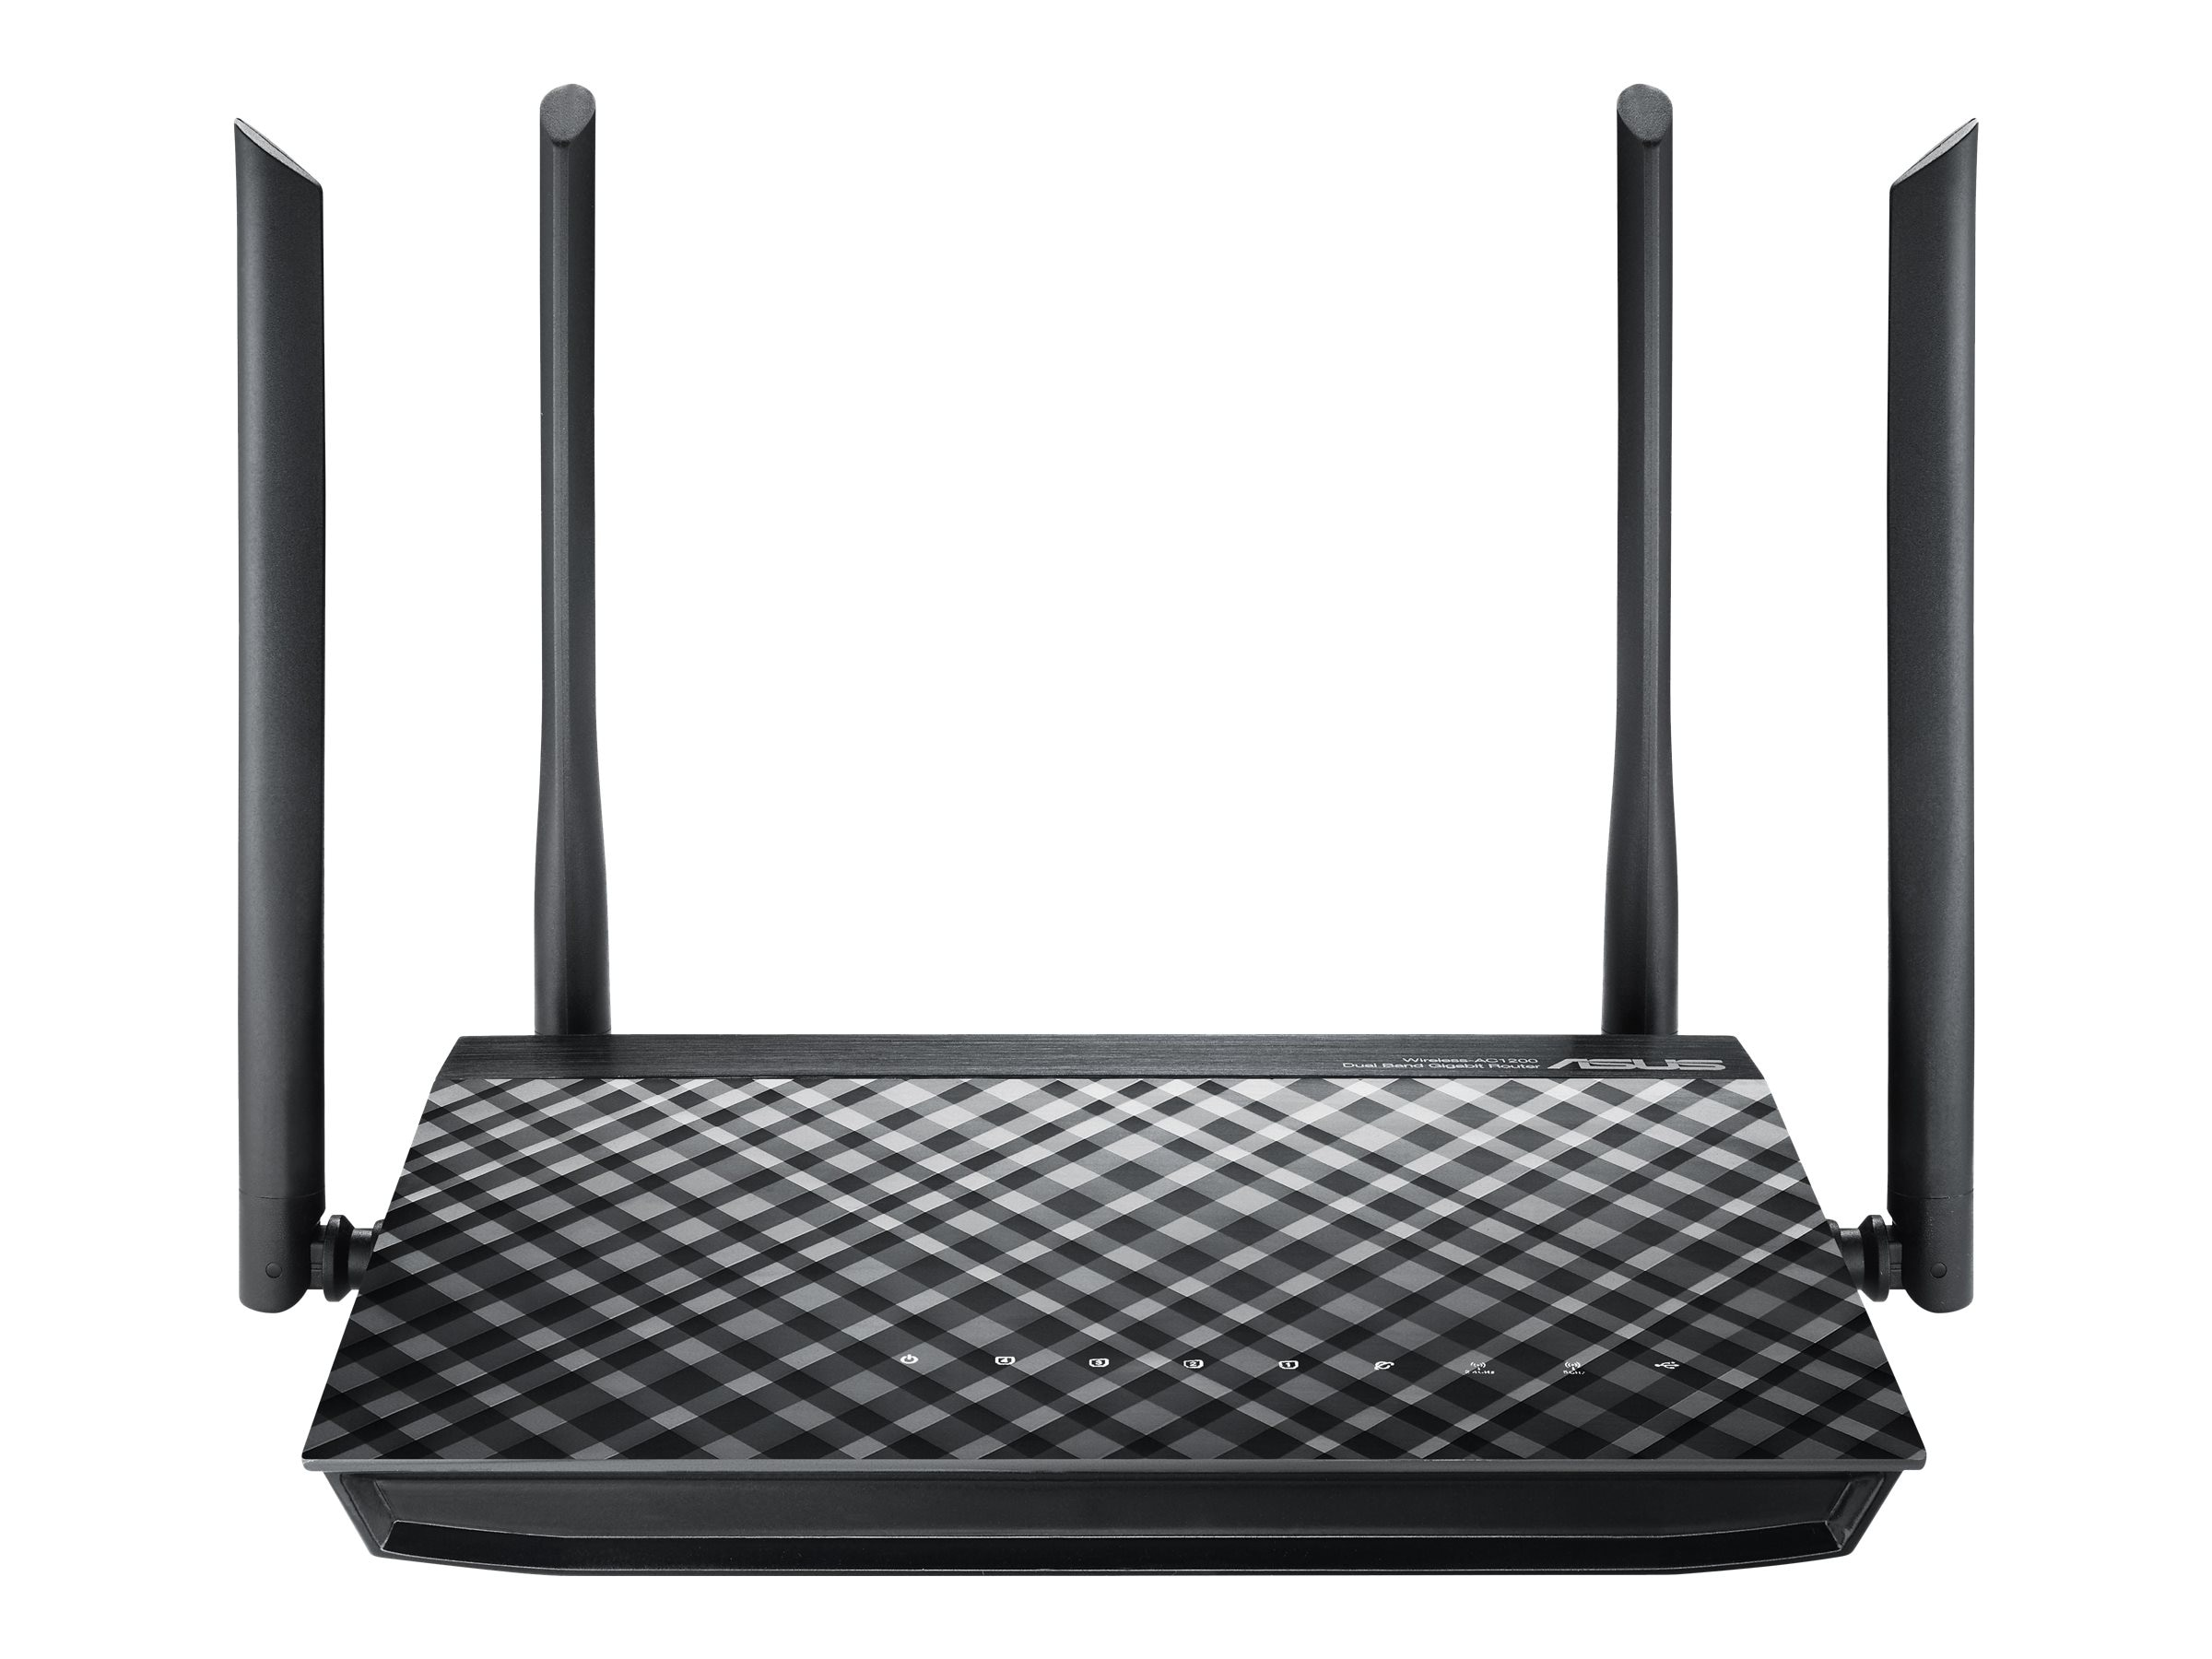 Asus AC1200 Dual Band Wireless Router, RT-AC1200